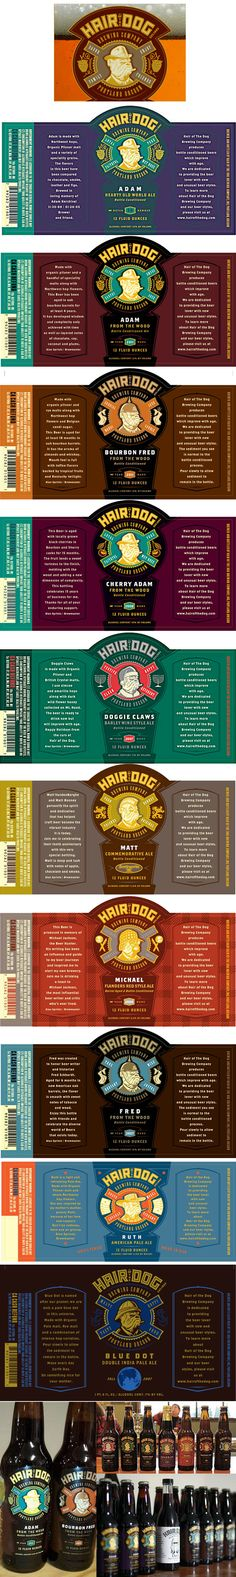 Hair Of The Dog Brewing Company's Lovely Labels.